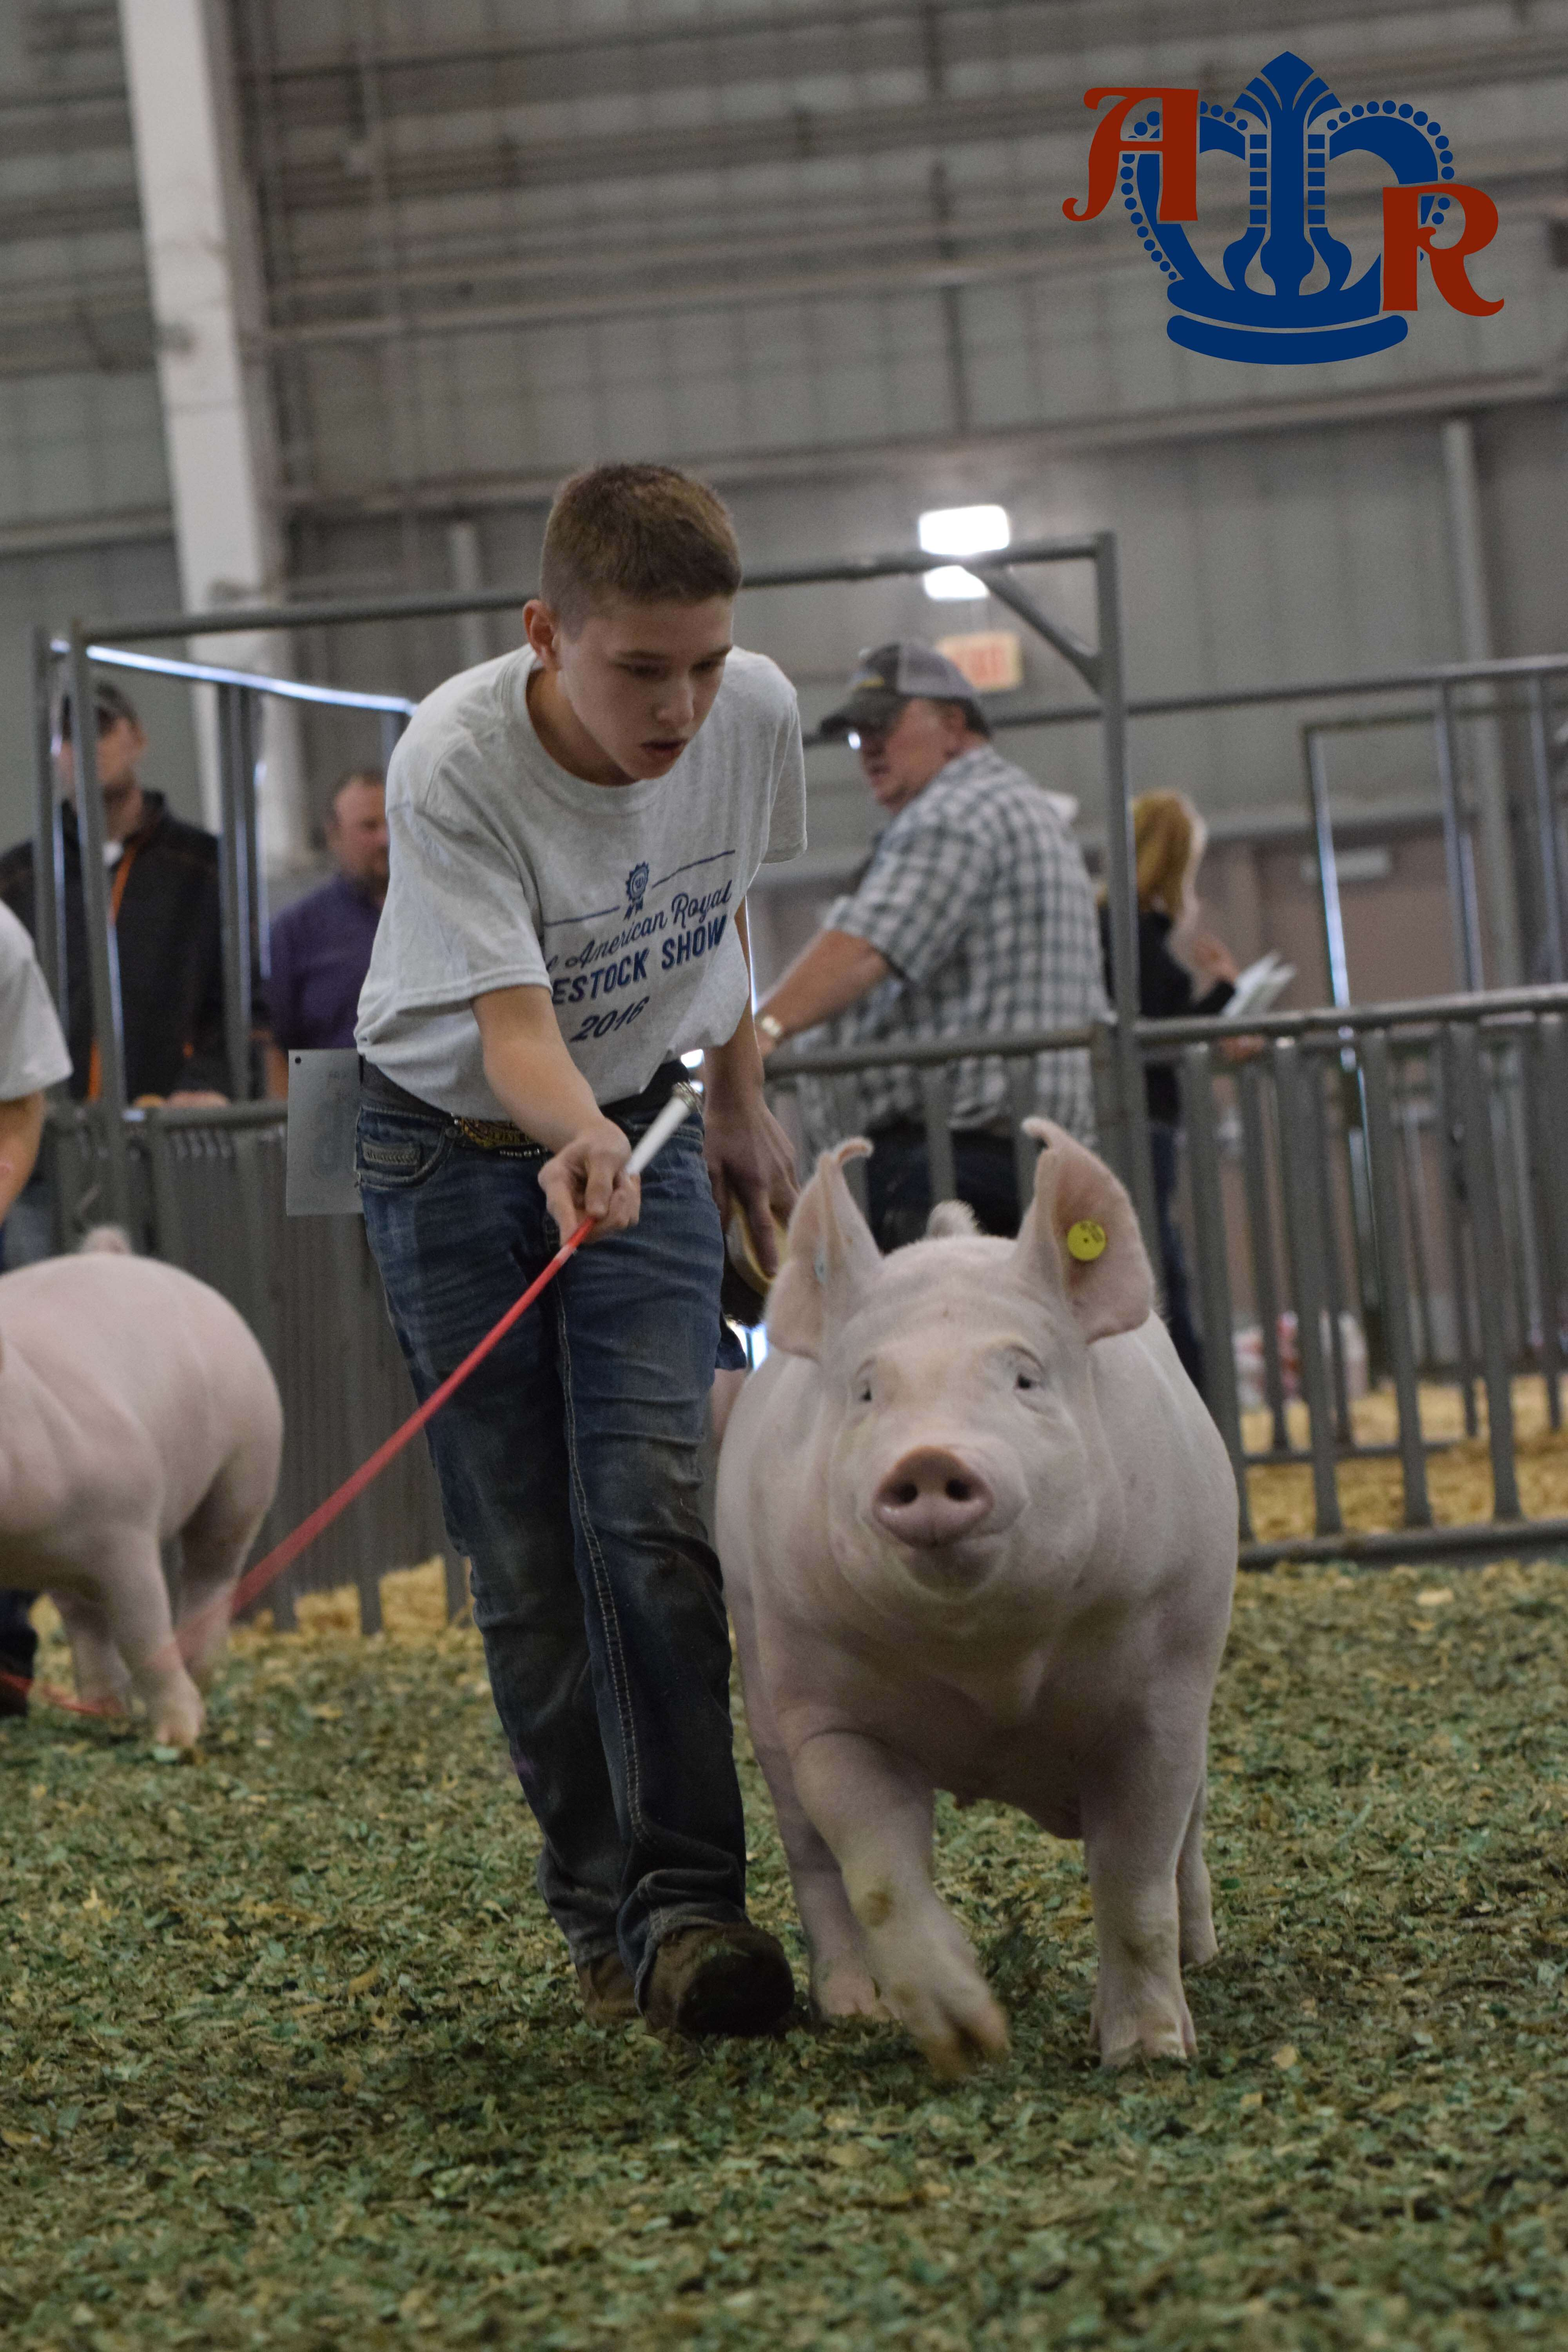 Bennington selects North as the Grand Champion Market Hog